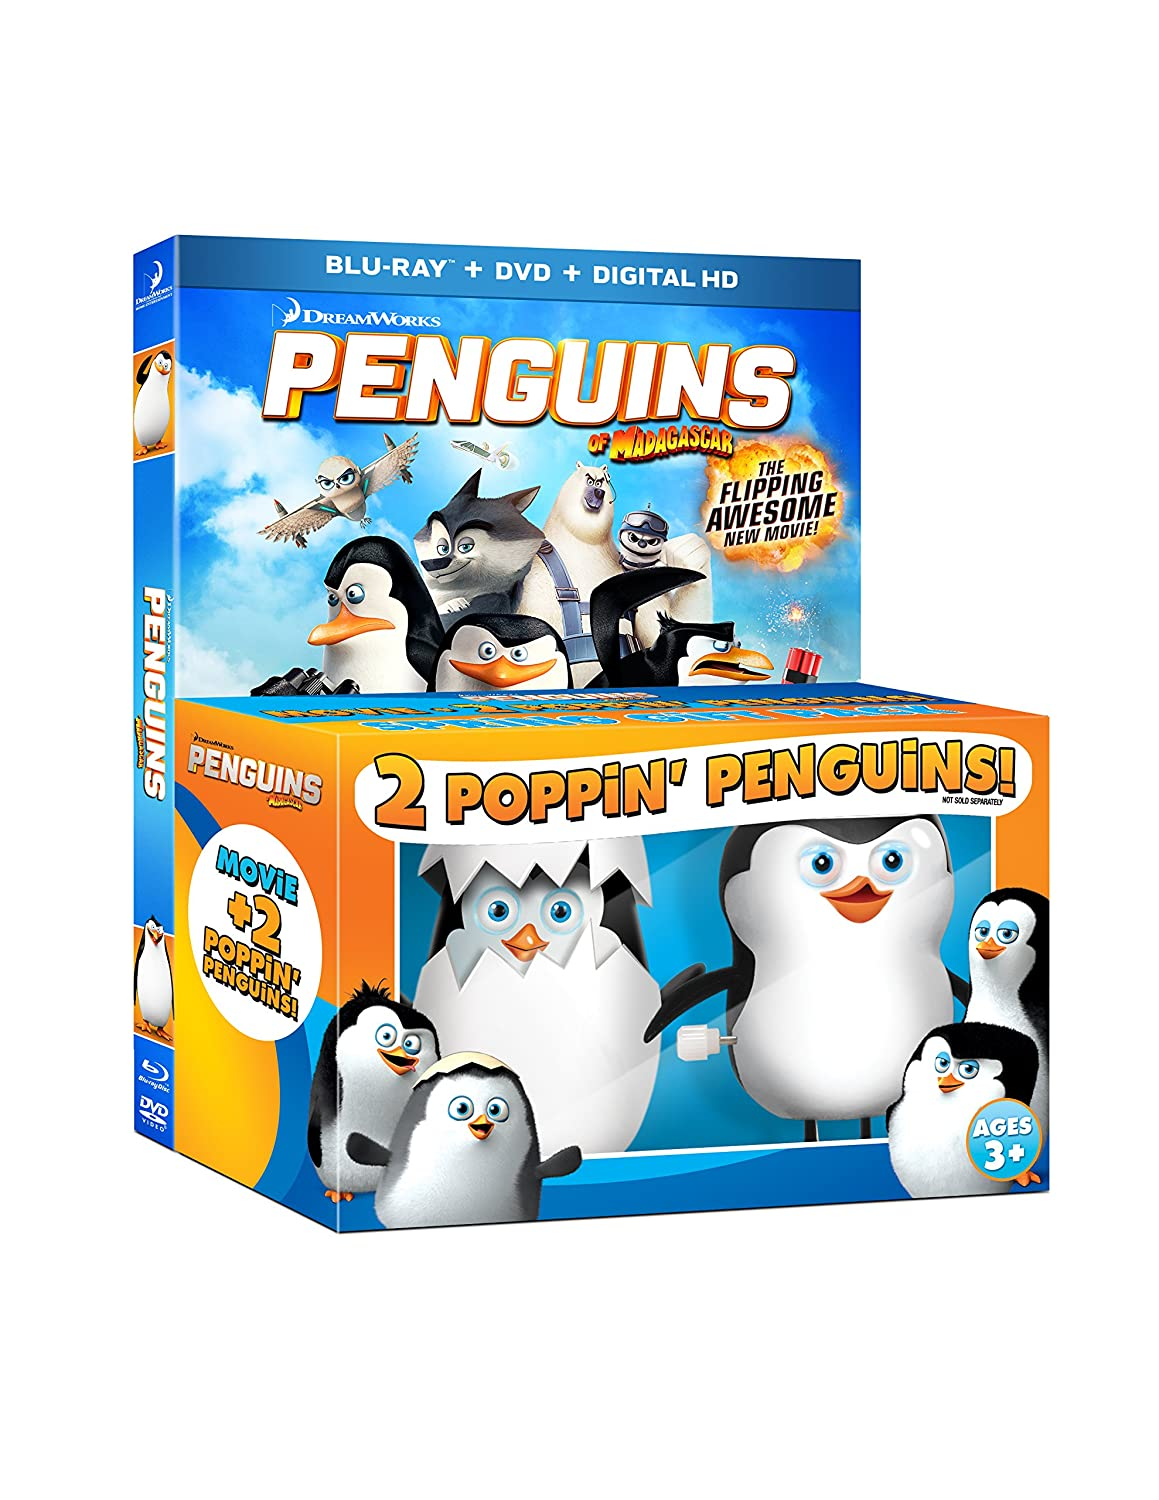 Penguins of Madagascar with 2 Poppin' Penguins Toys [Blu-ray]